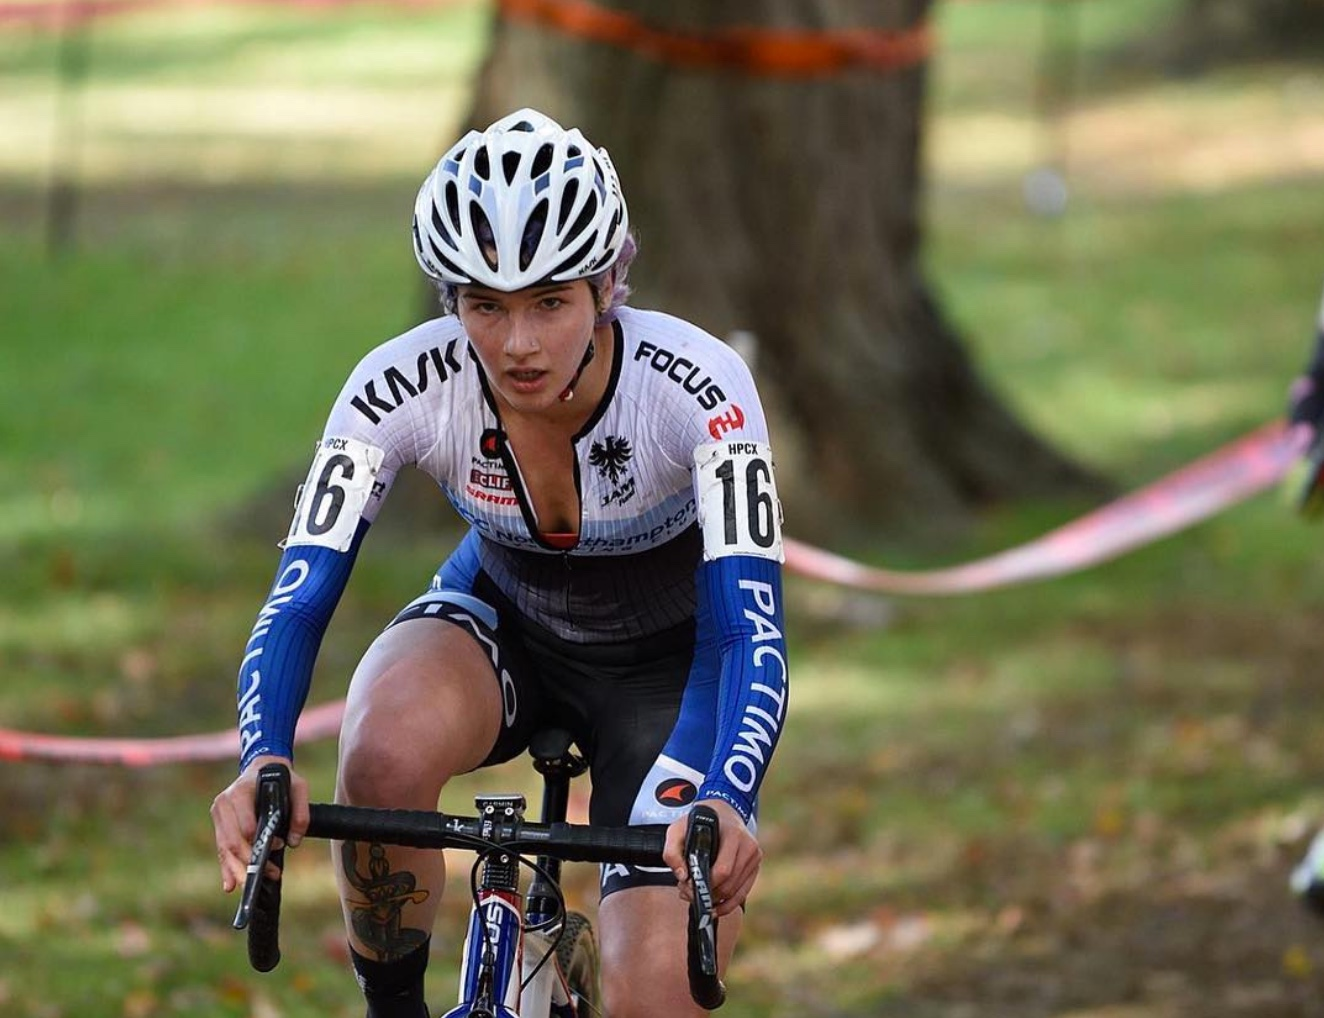 Rhys May focuses on the course ahead at the NBX Gran Prix of Cyclocross on Dec. 3.